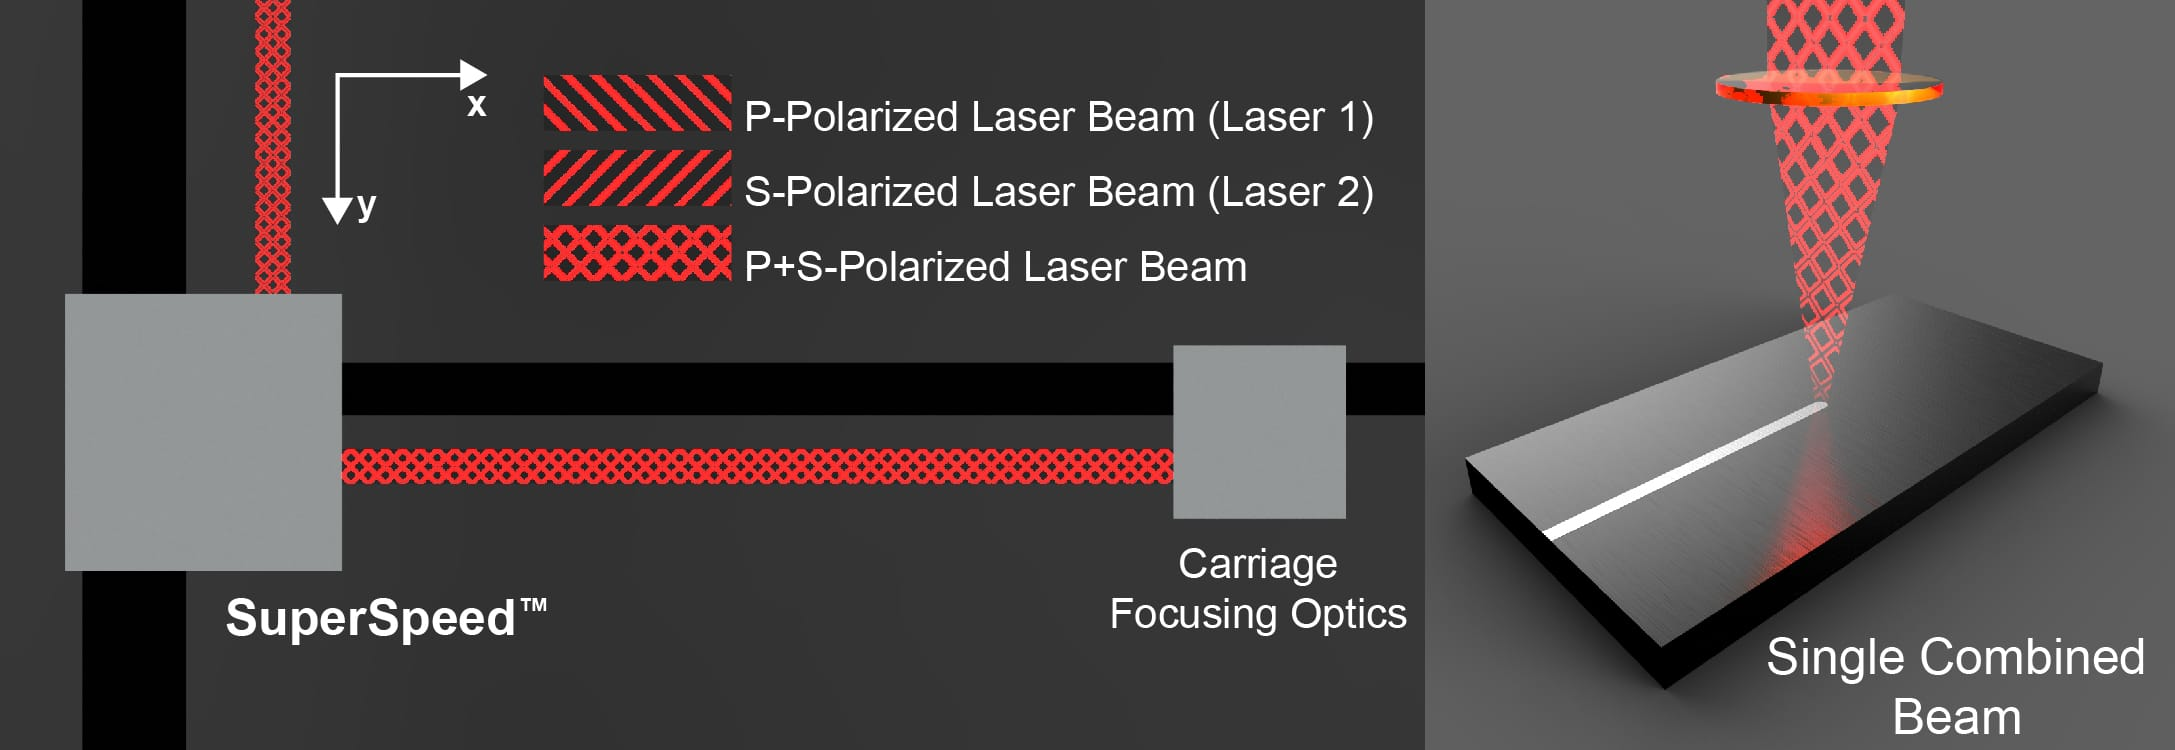 SuperSpeed Single Combined Beam Laser